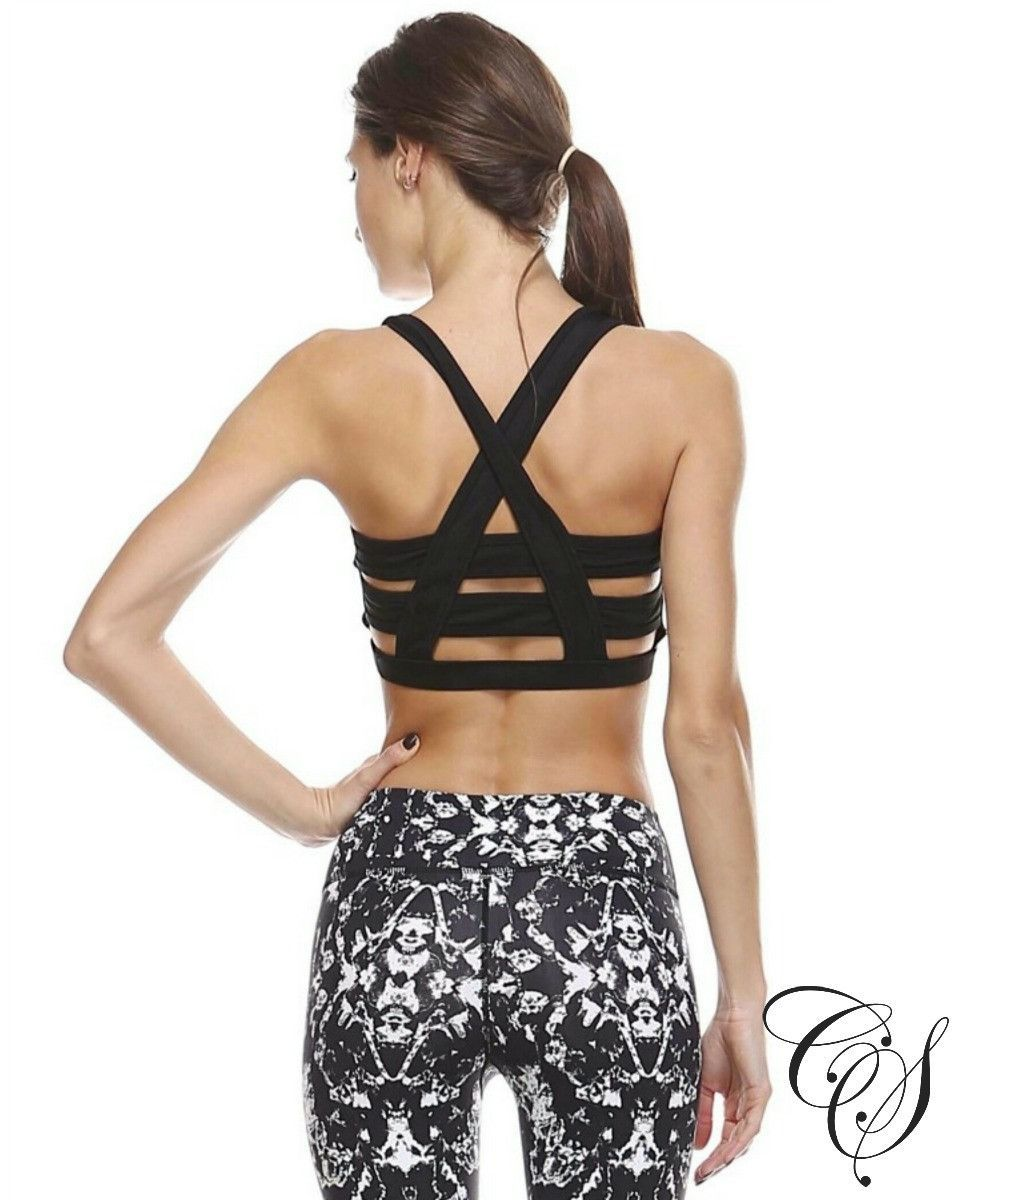 0a7cb129007 Explore Yoga Workout Clothes and more! Power through your next workout with  this strappy cross back sports bra. In a black